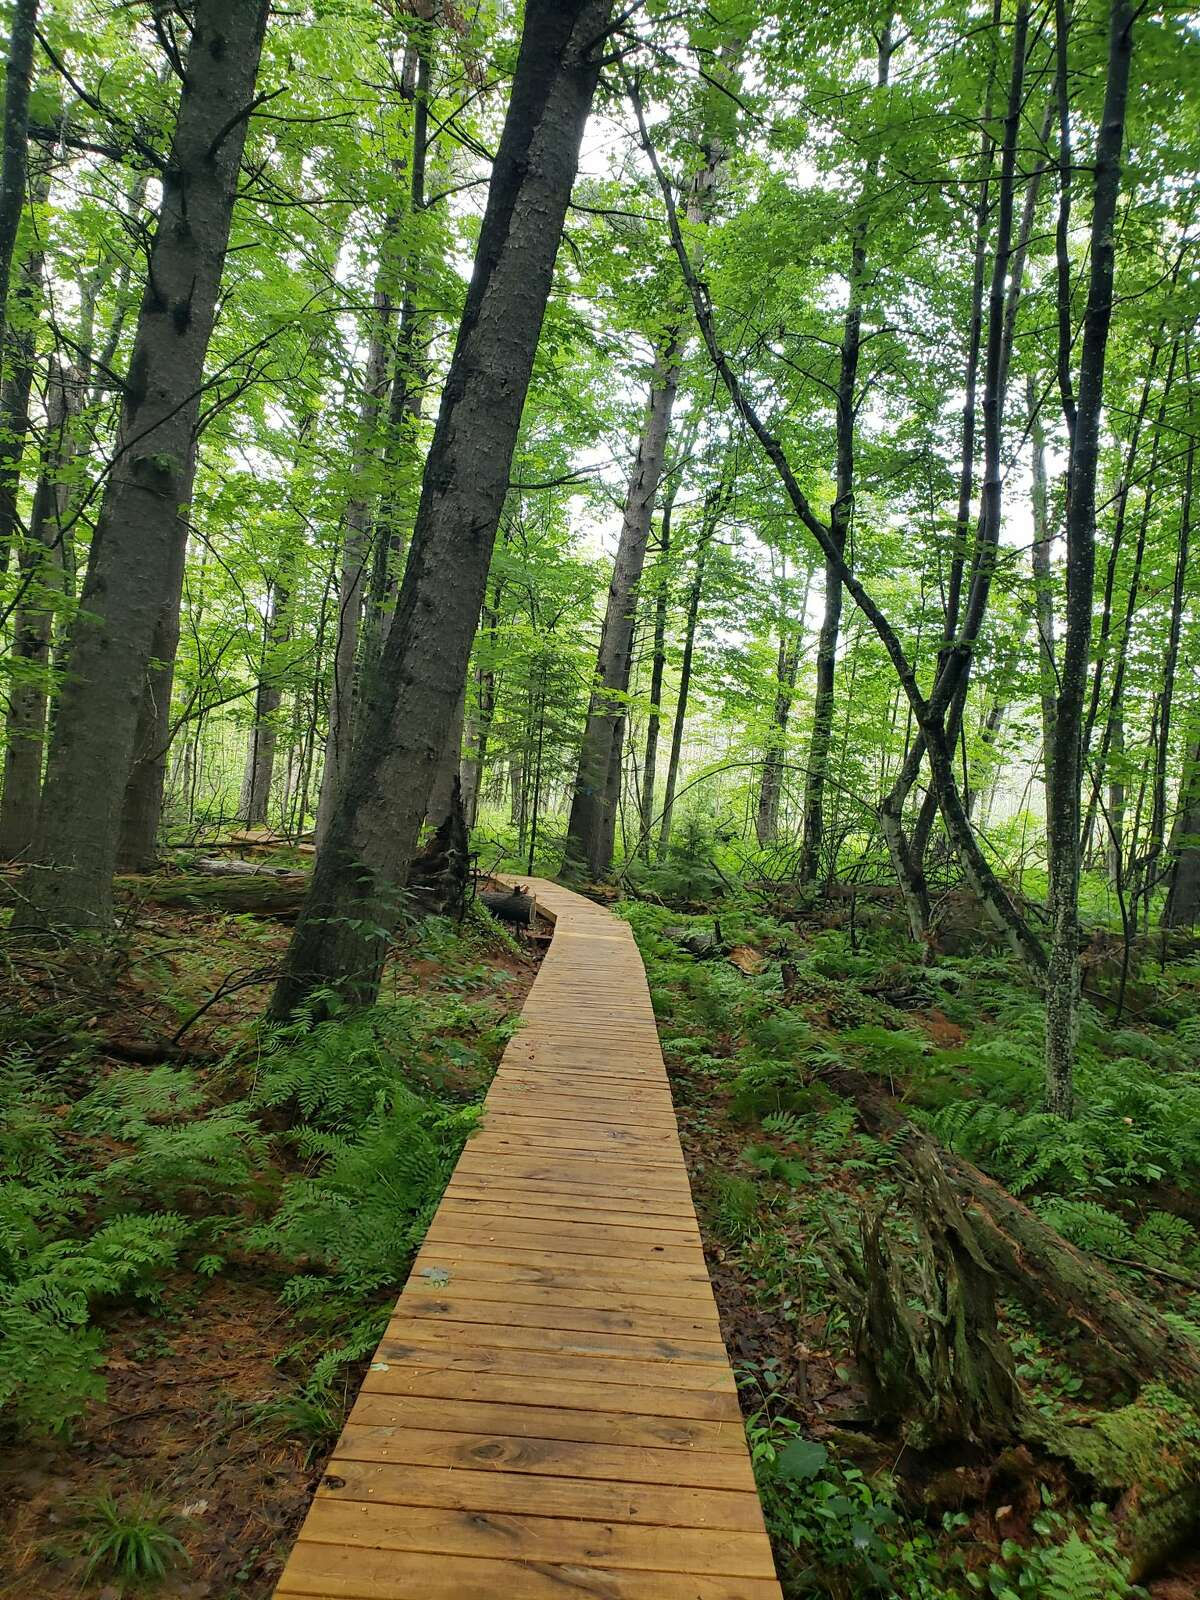 Last week, Arielle Breen went around the Leelanau Peninsula, Suttons Bay and other places going from hiking spot to natural areas like the Kehl Lake Natural Area taking photos in between the plumes of biting mosquitoes.